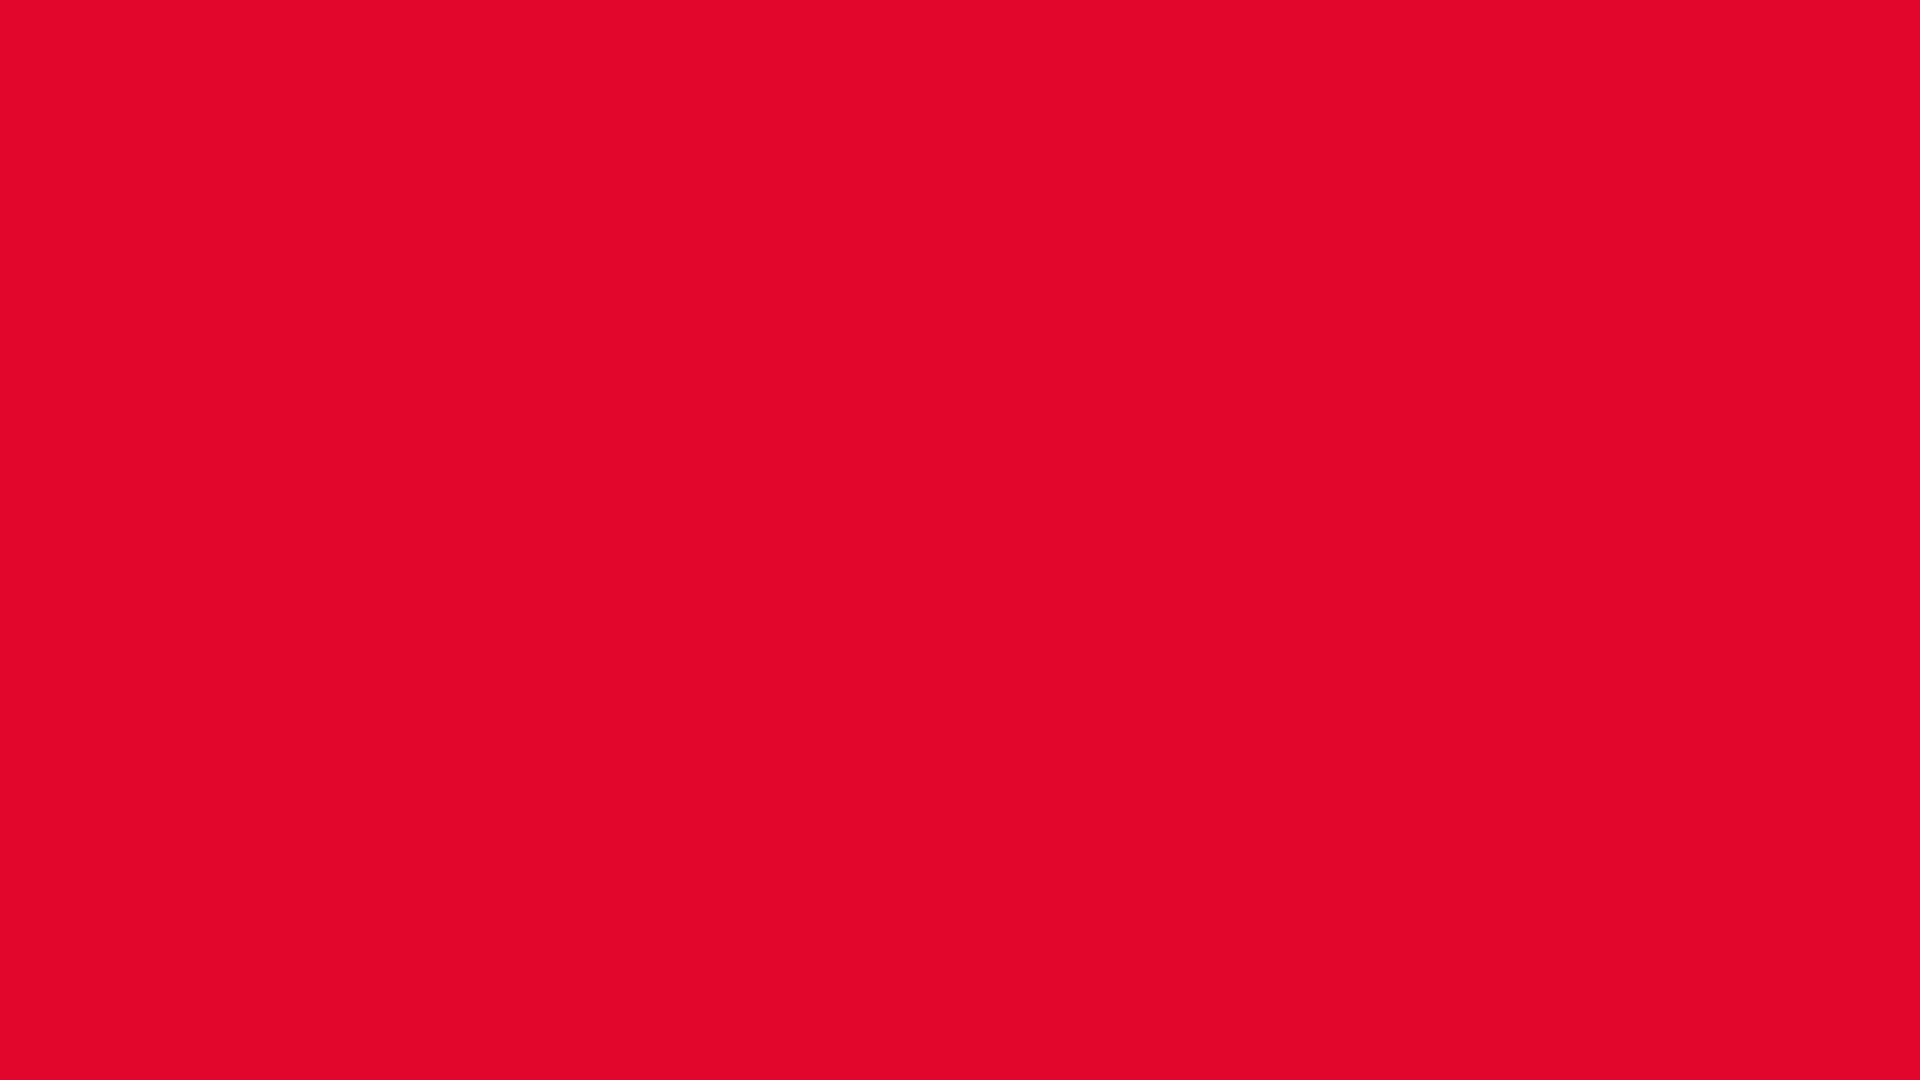 1920x1080 Medium Candy Apple Red Solid Color Background